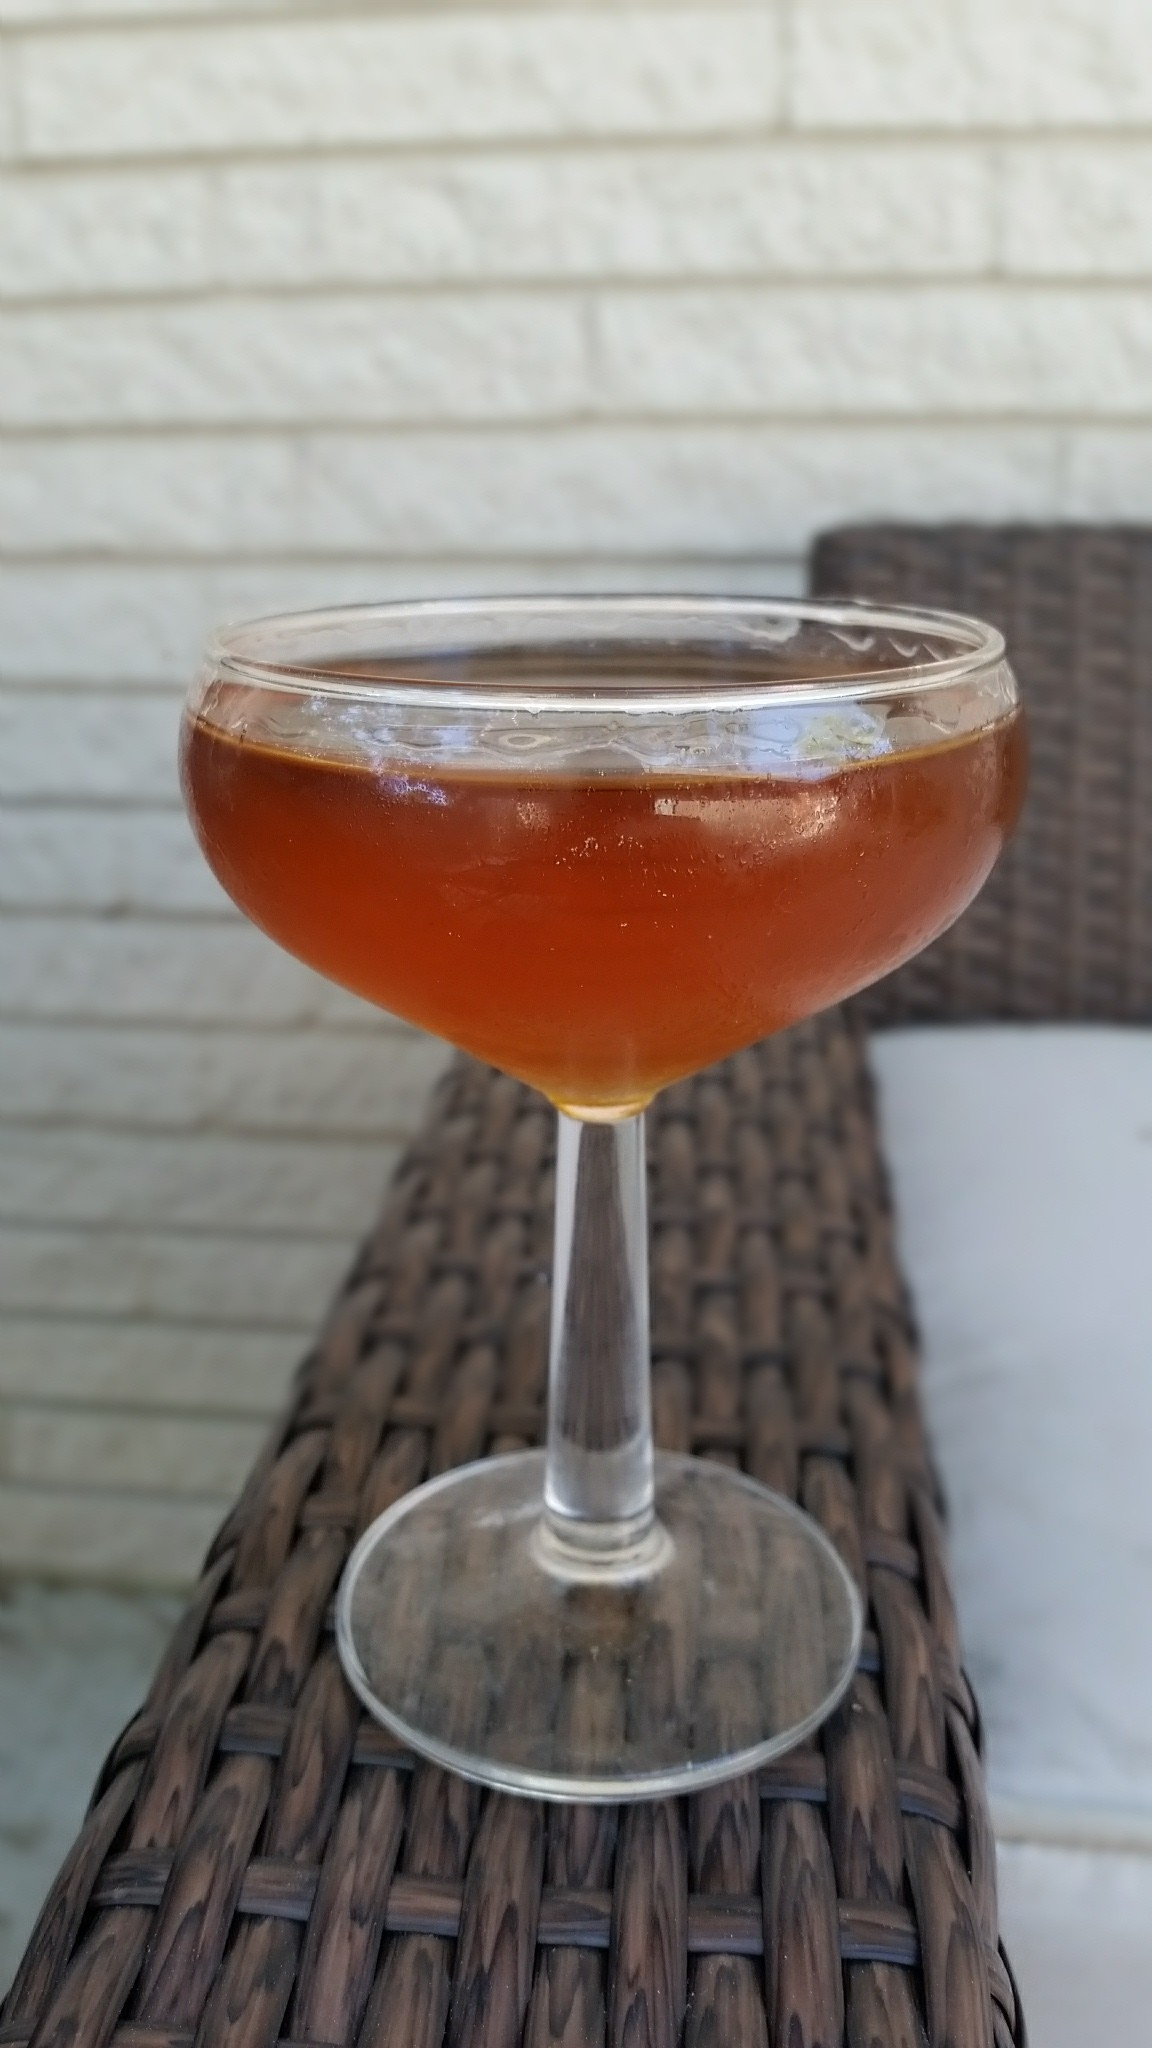 The Fall Reduction Cocktail